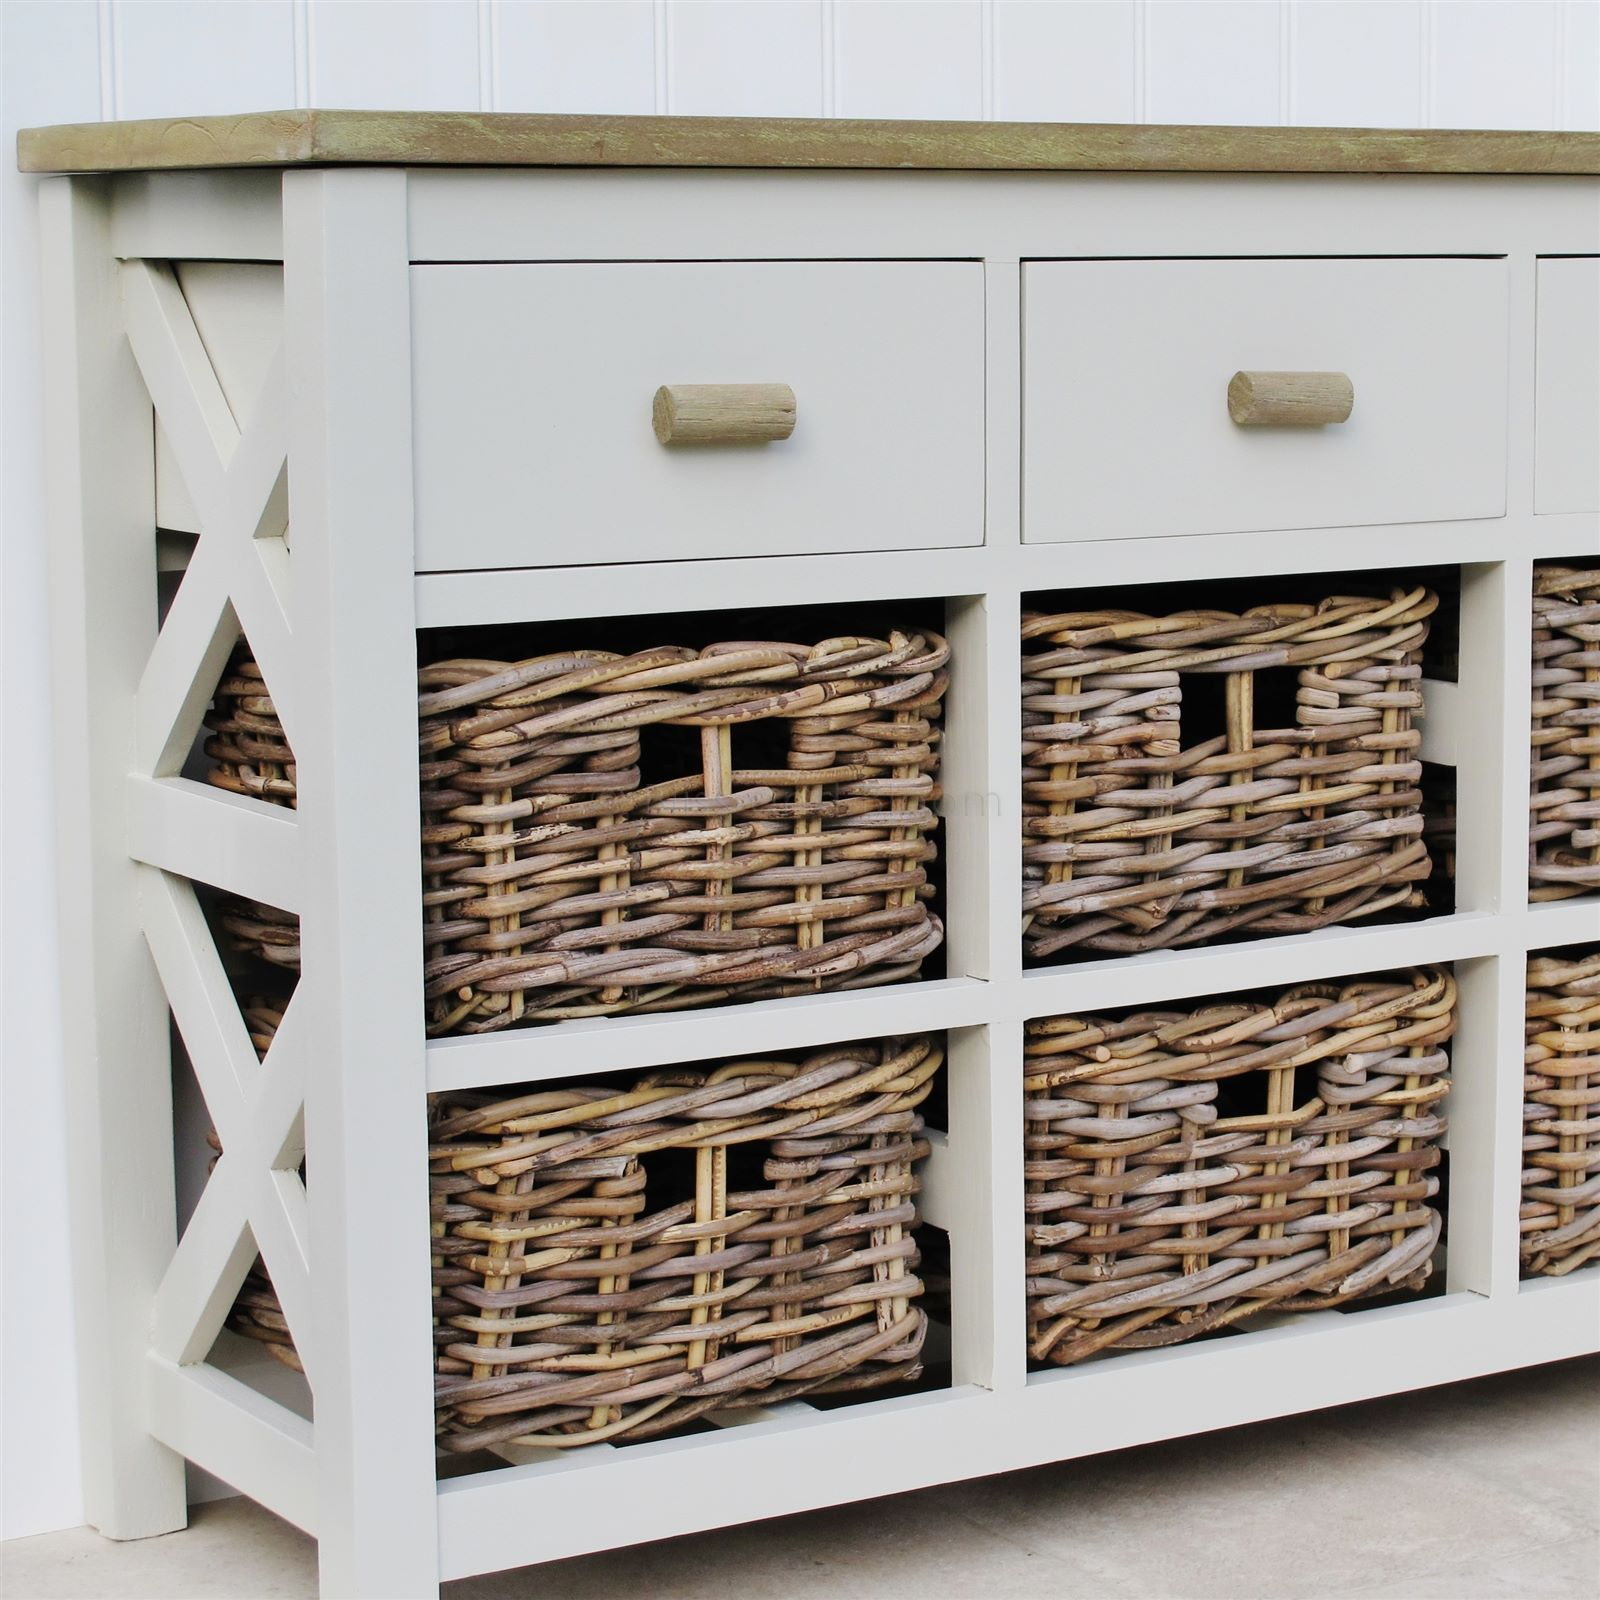 9 Drawer Basket Storage Unit Bliss And Bloom Ltd